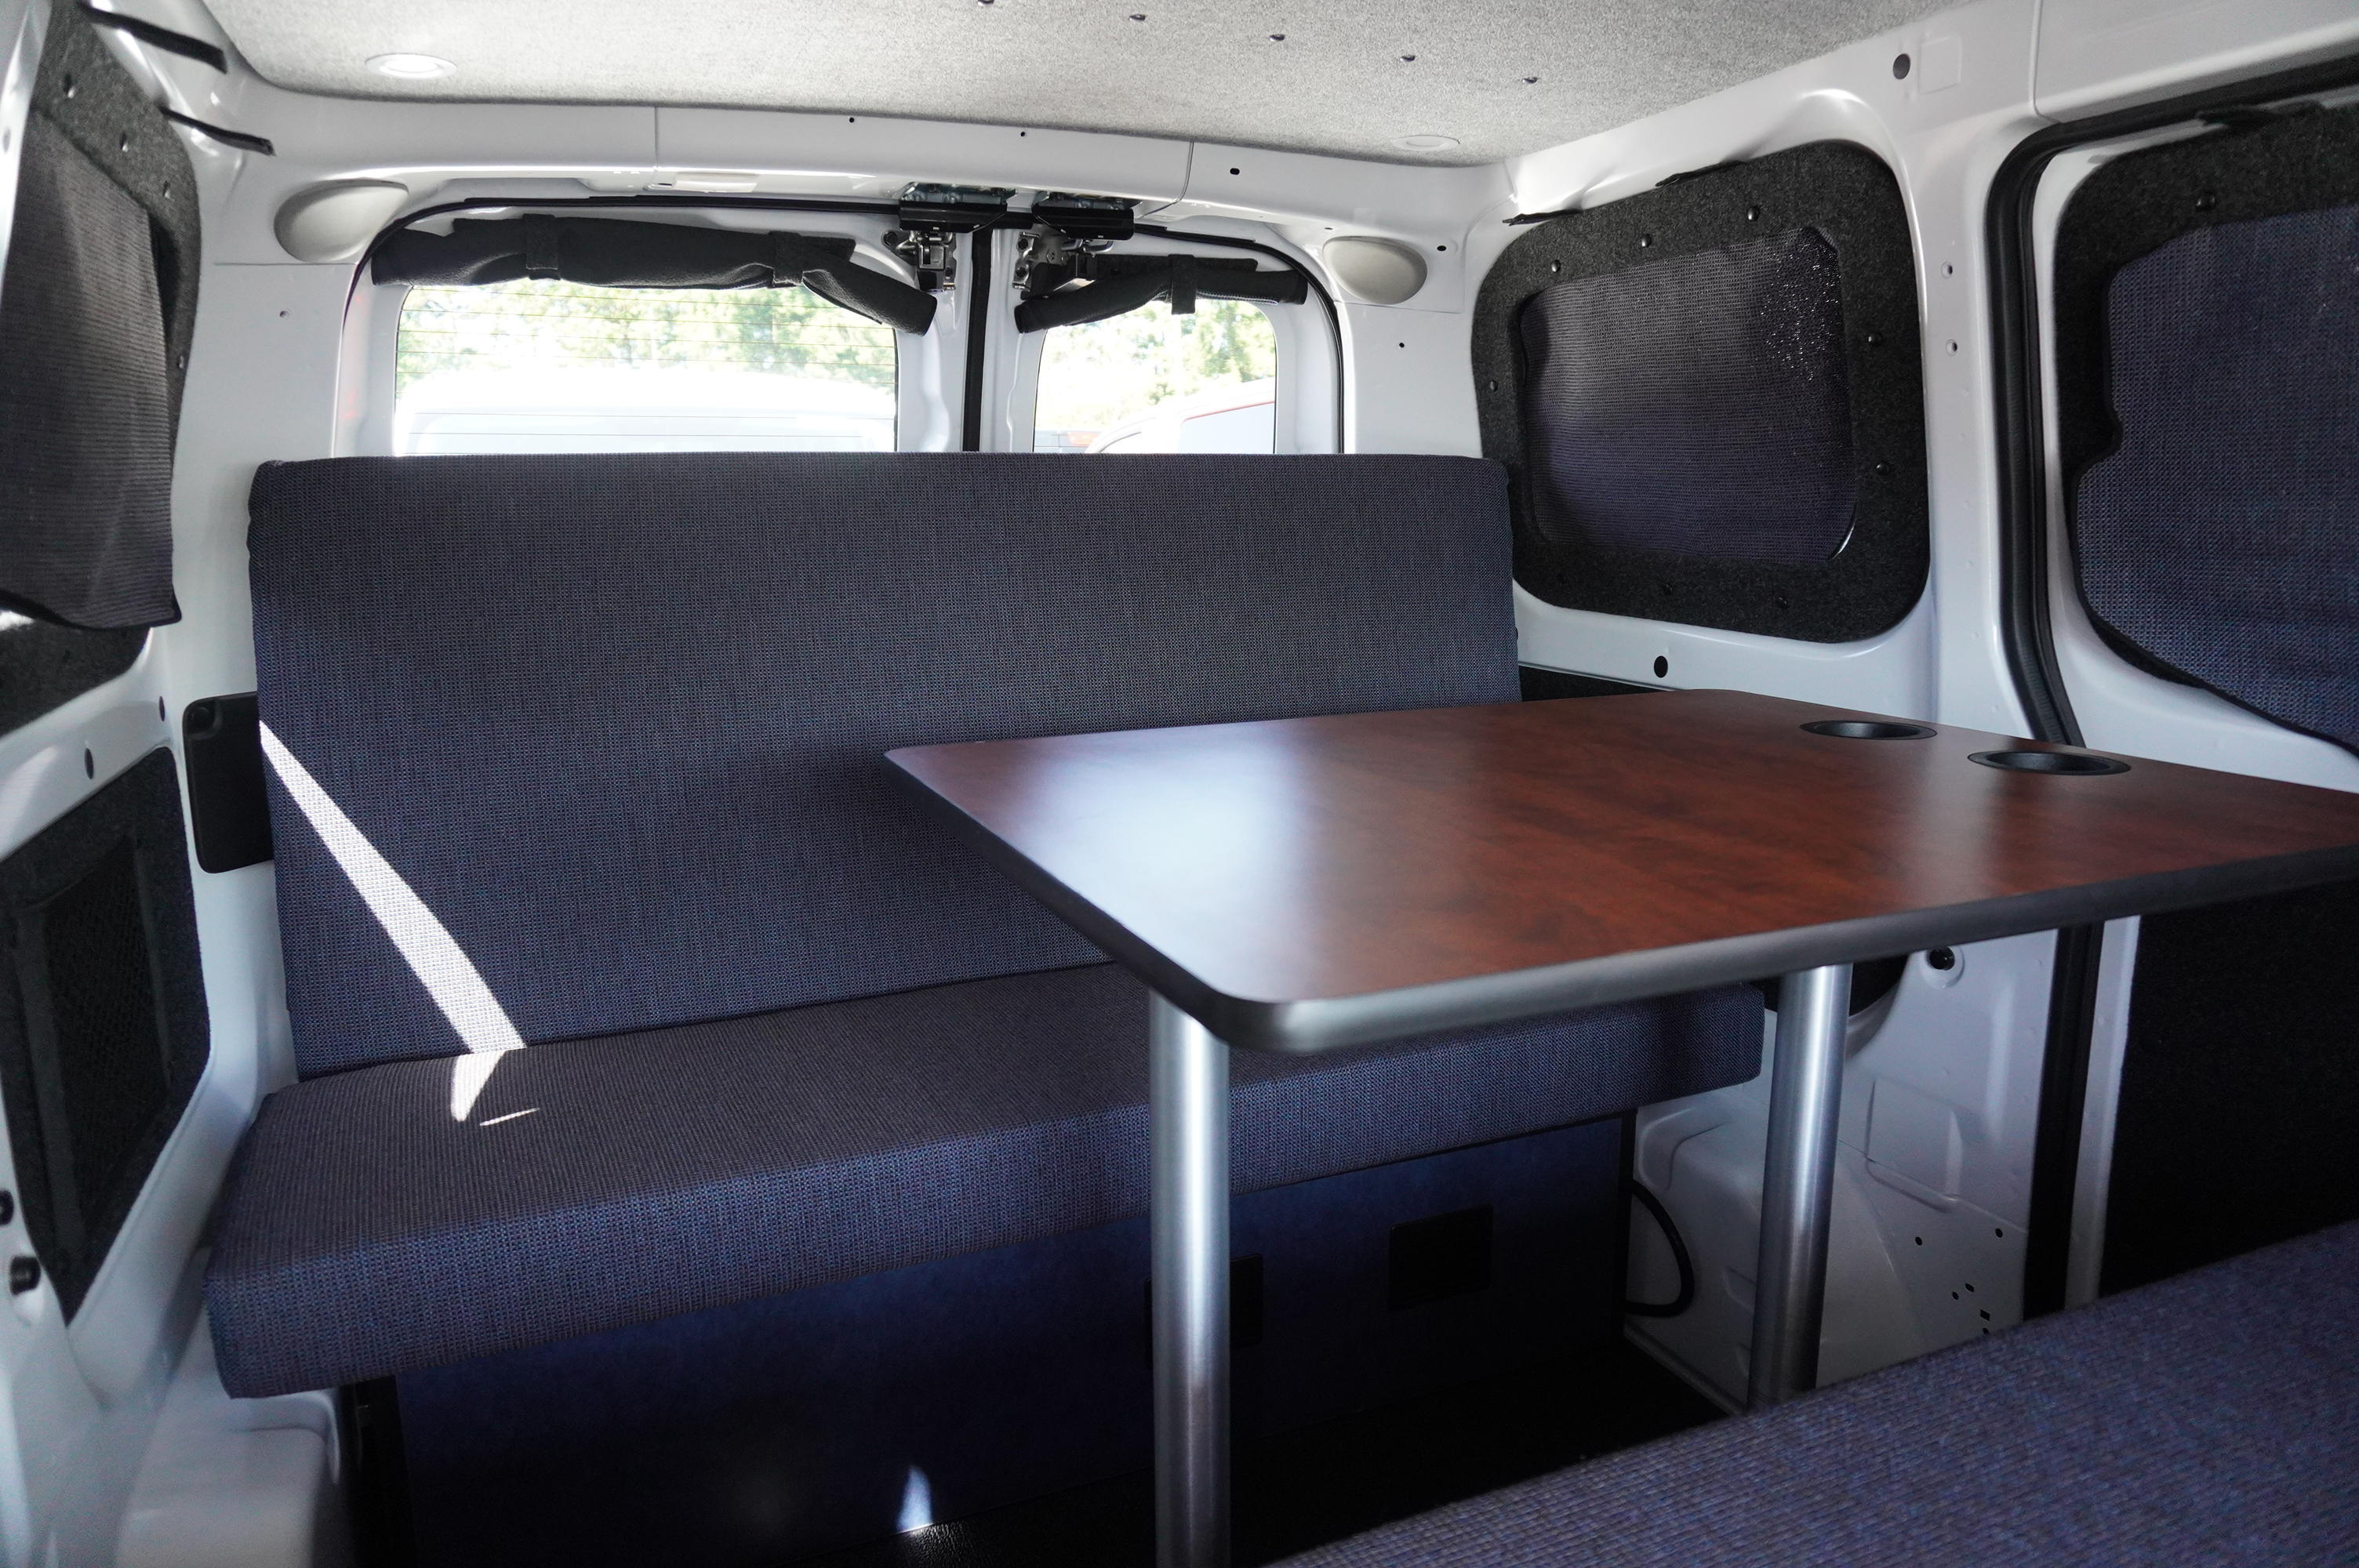 New 2019 Free Bird Camper Van White Denim